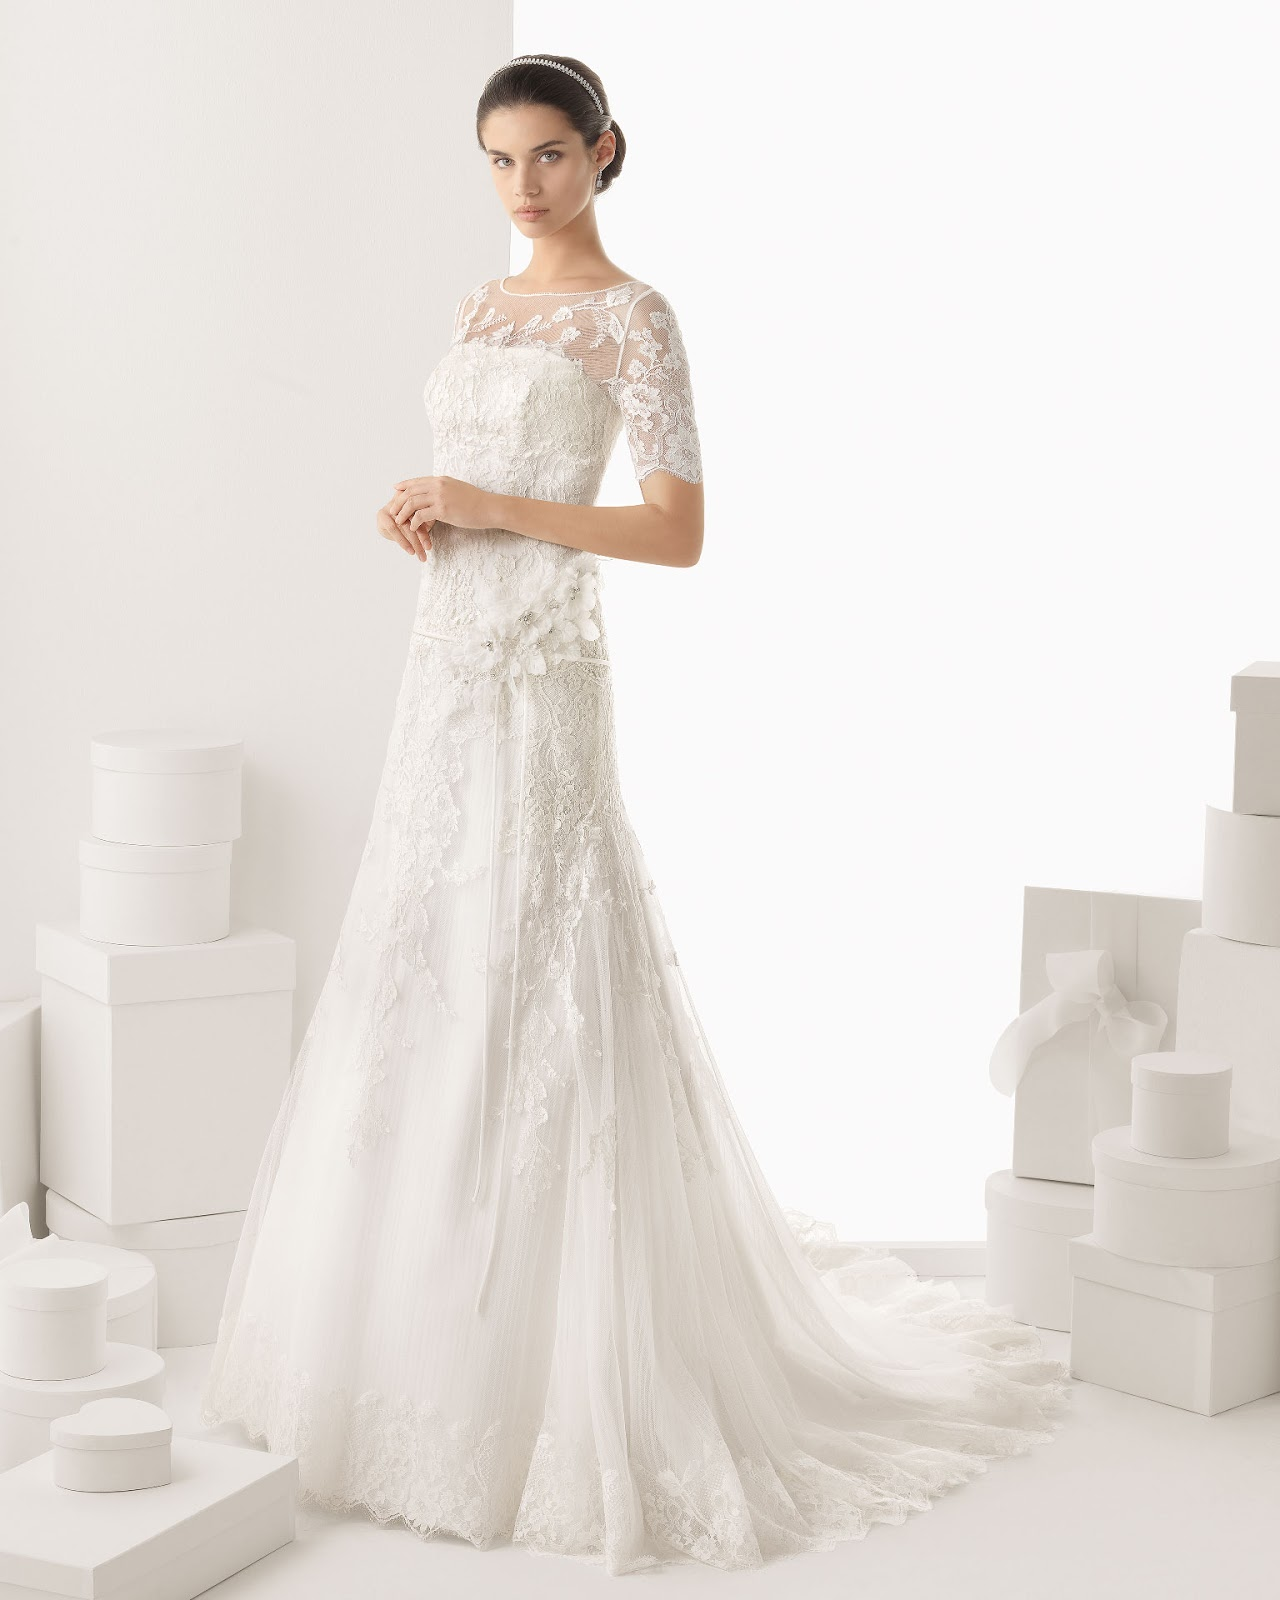 Long Gown Wedding: DressyBridal: Wedding Dresses With Lace Long Sleeves And